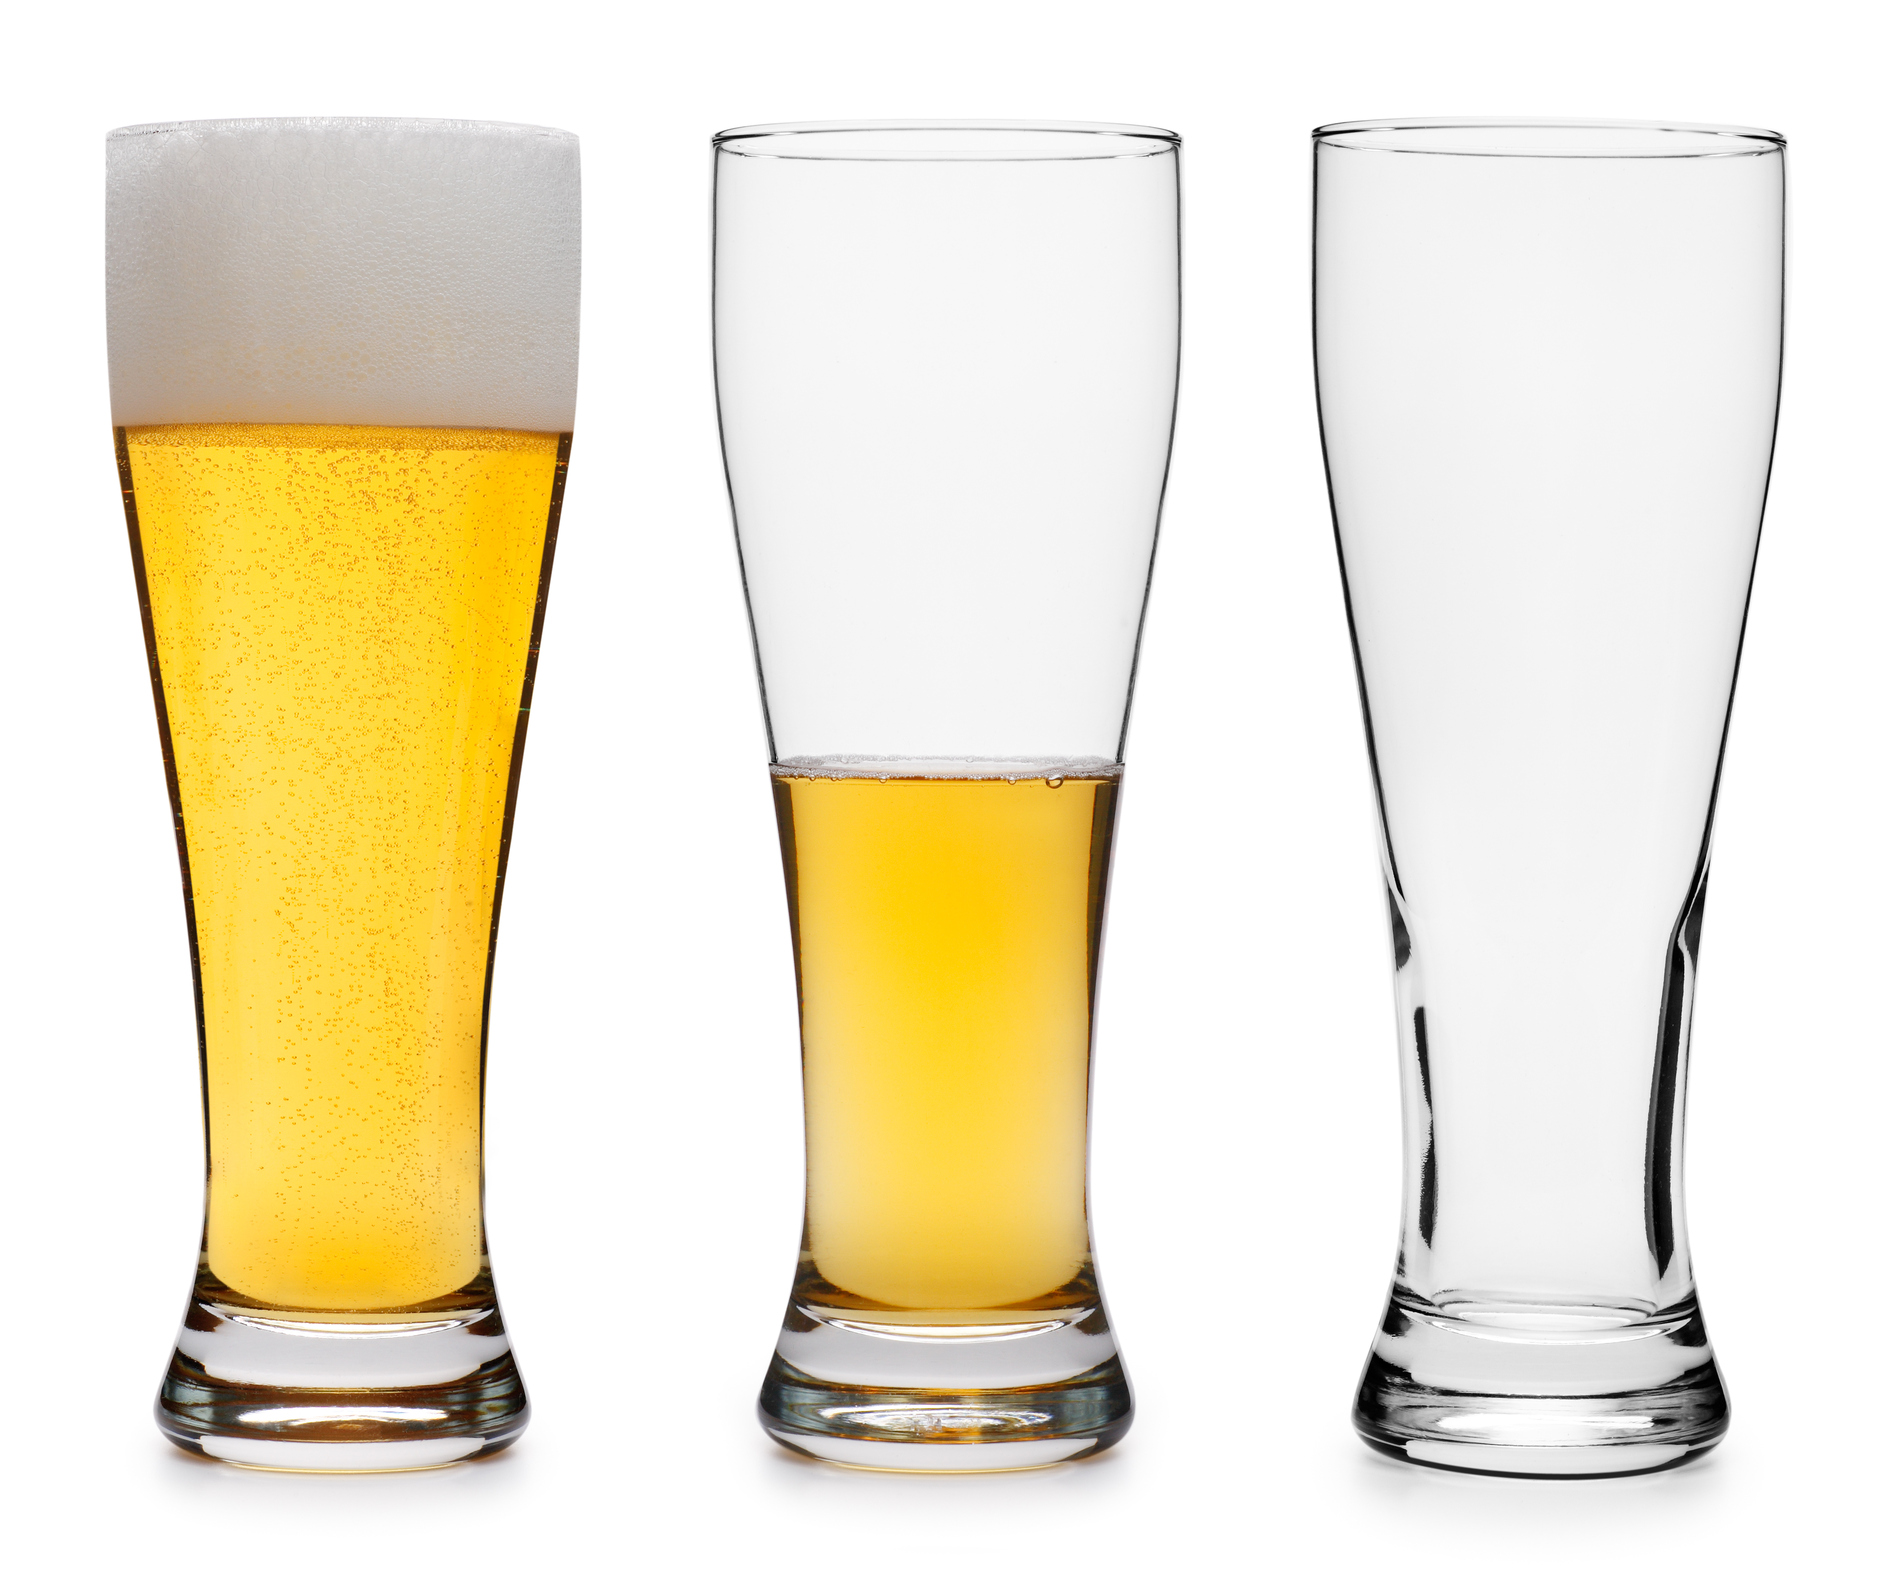 Beer glasses progressively empty